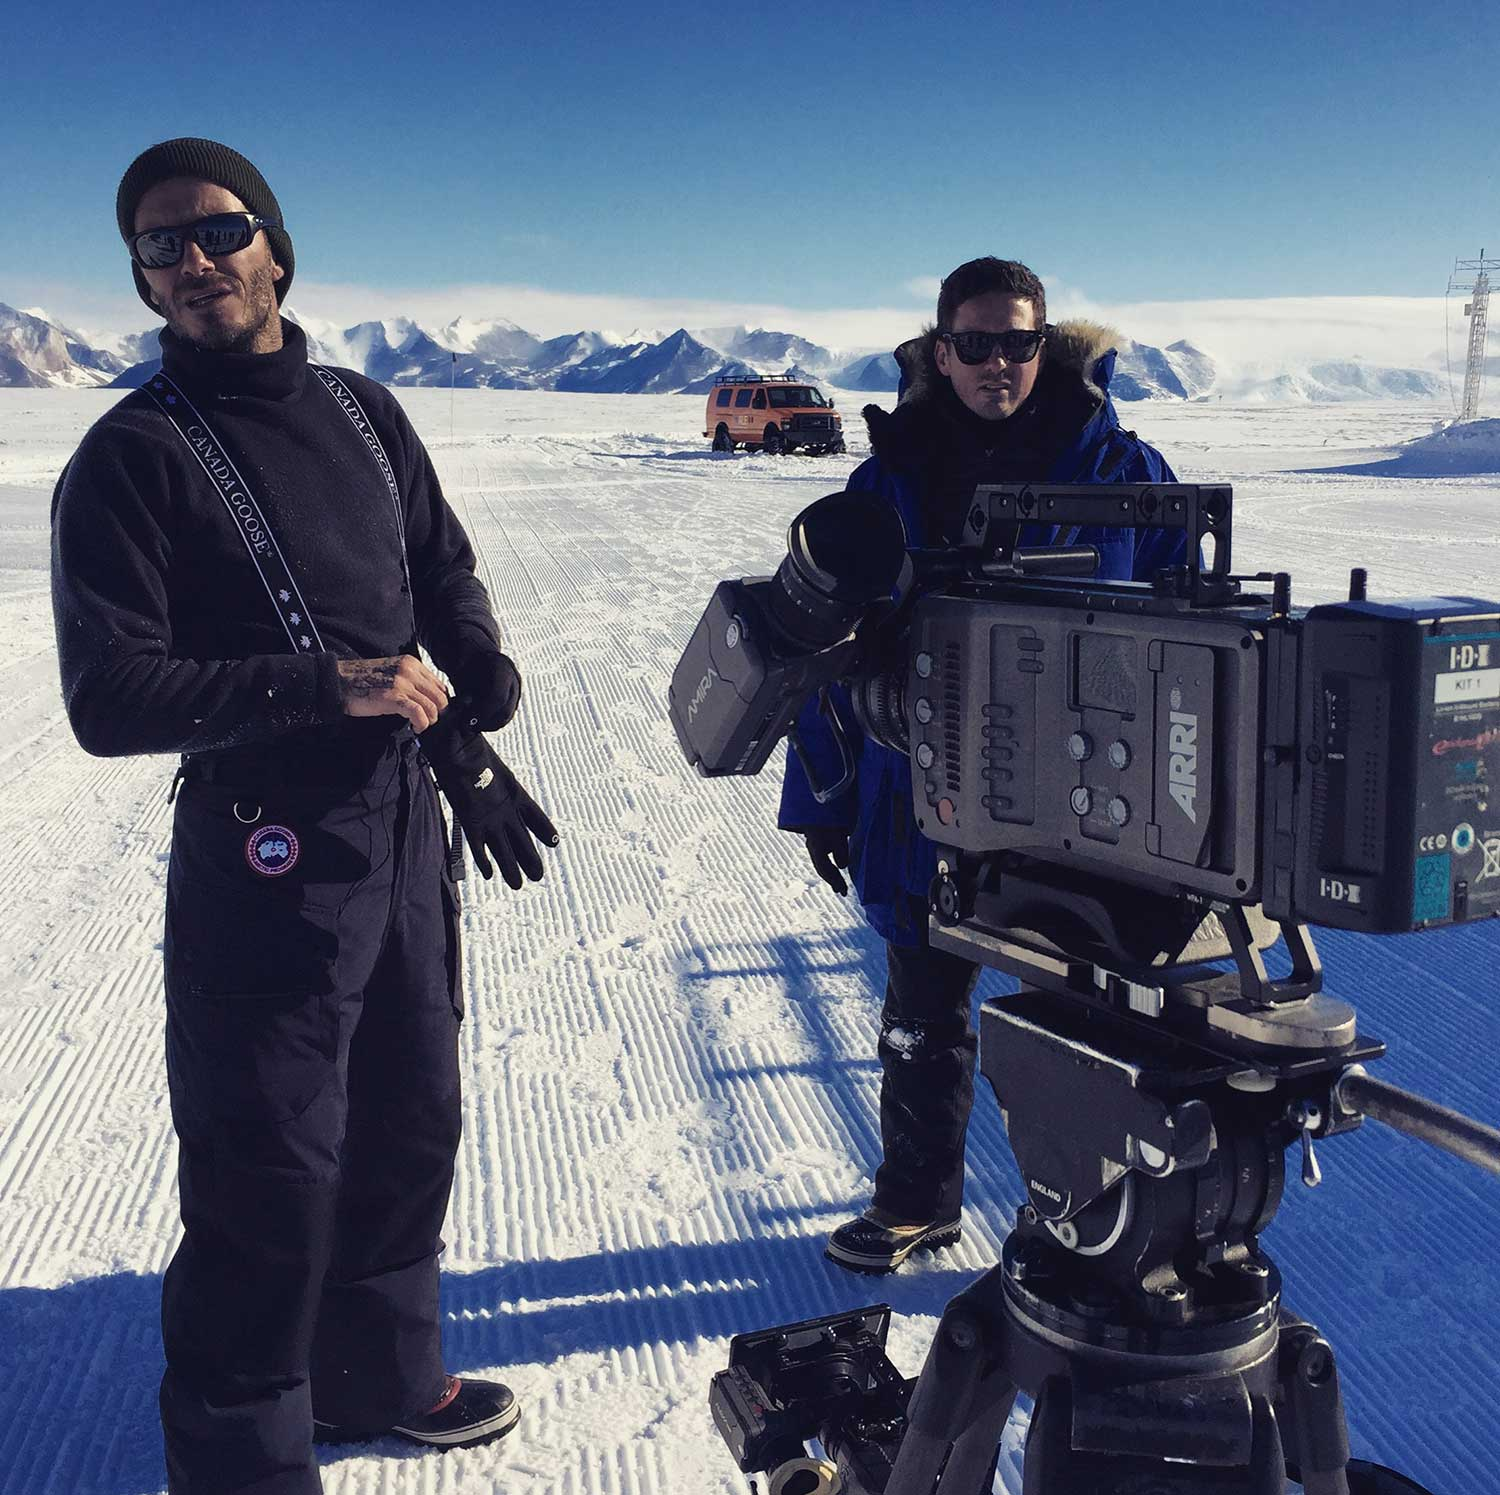 Antarctica and a lightweight rigged Alexa Mini and the Amira there for high speed shots.